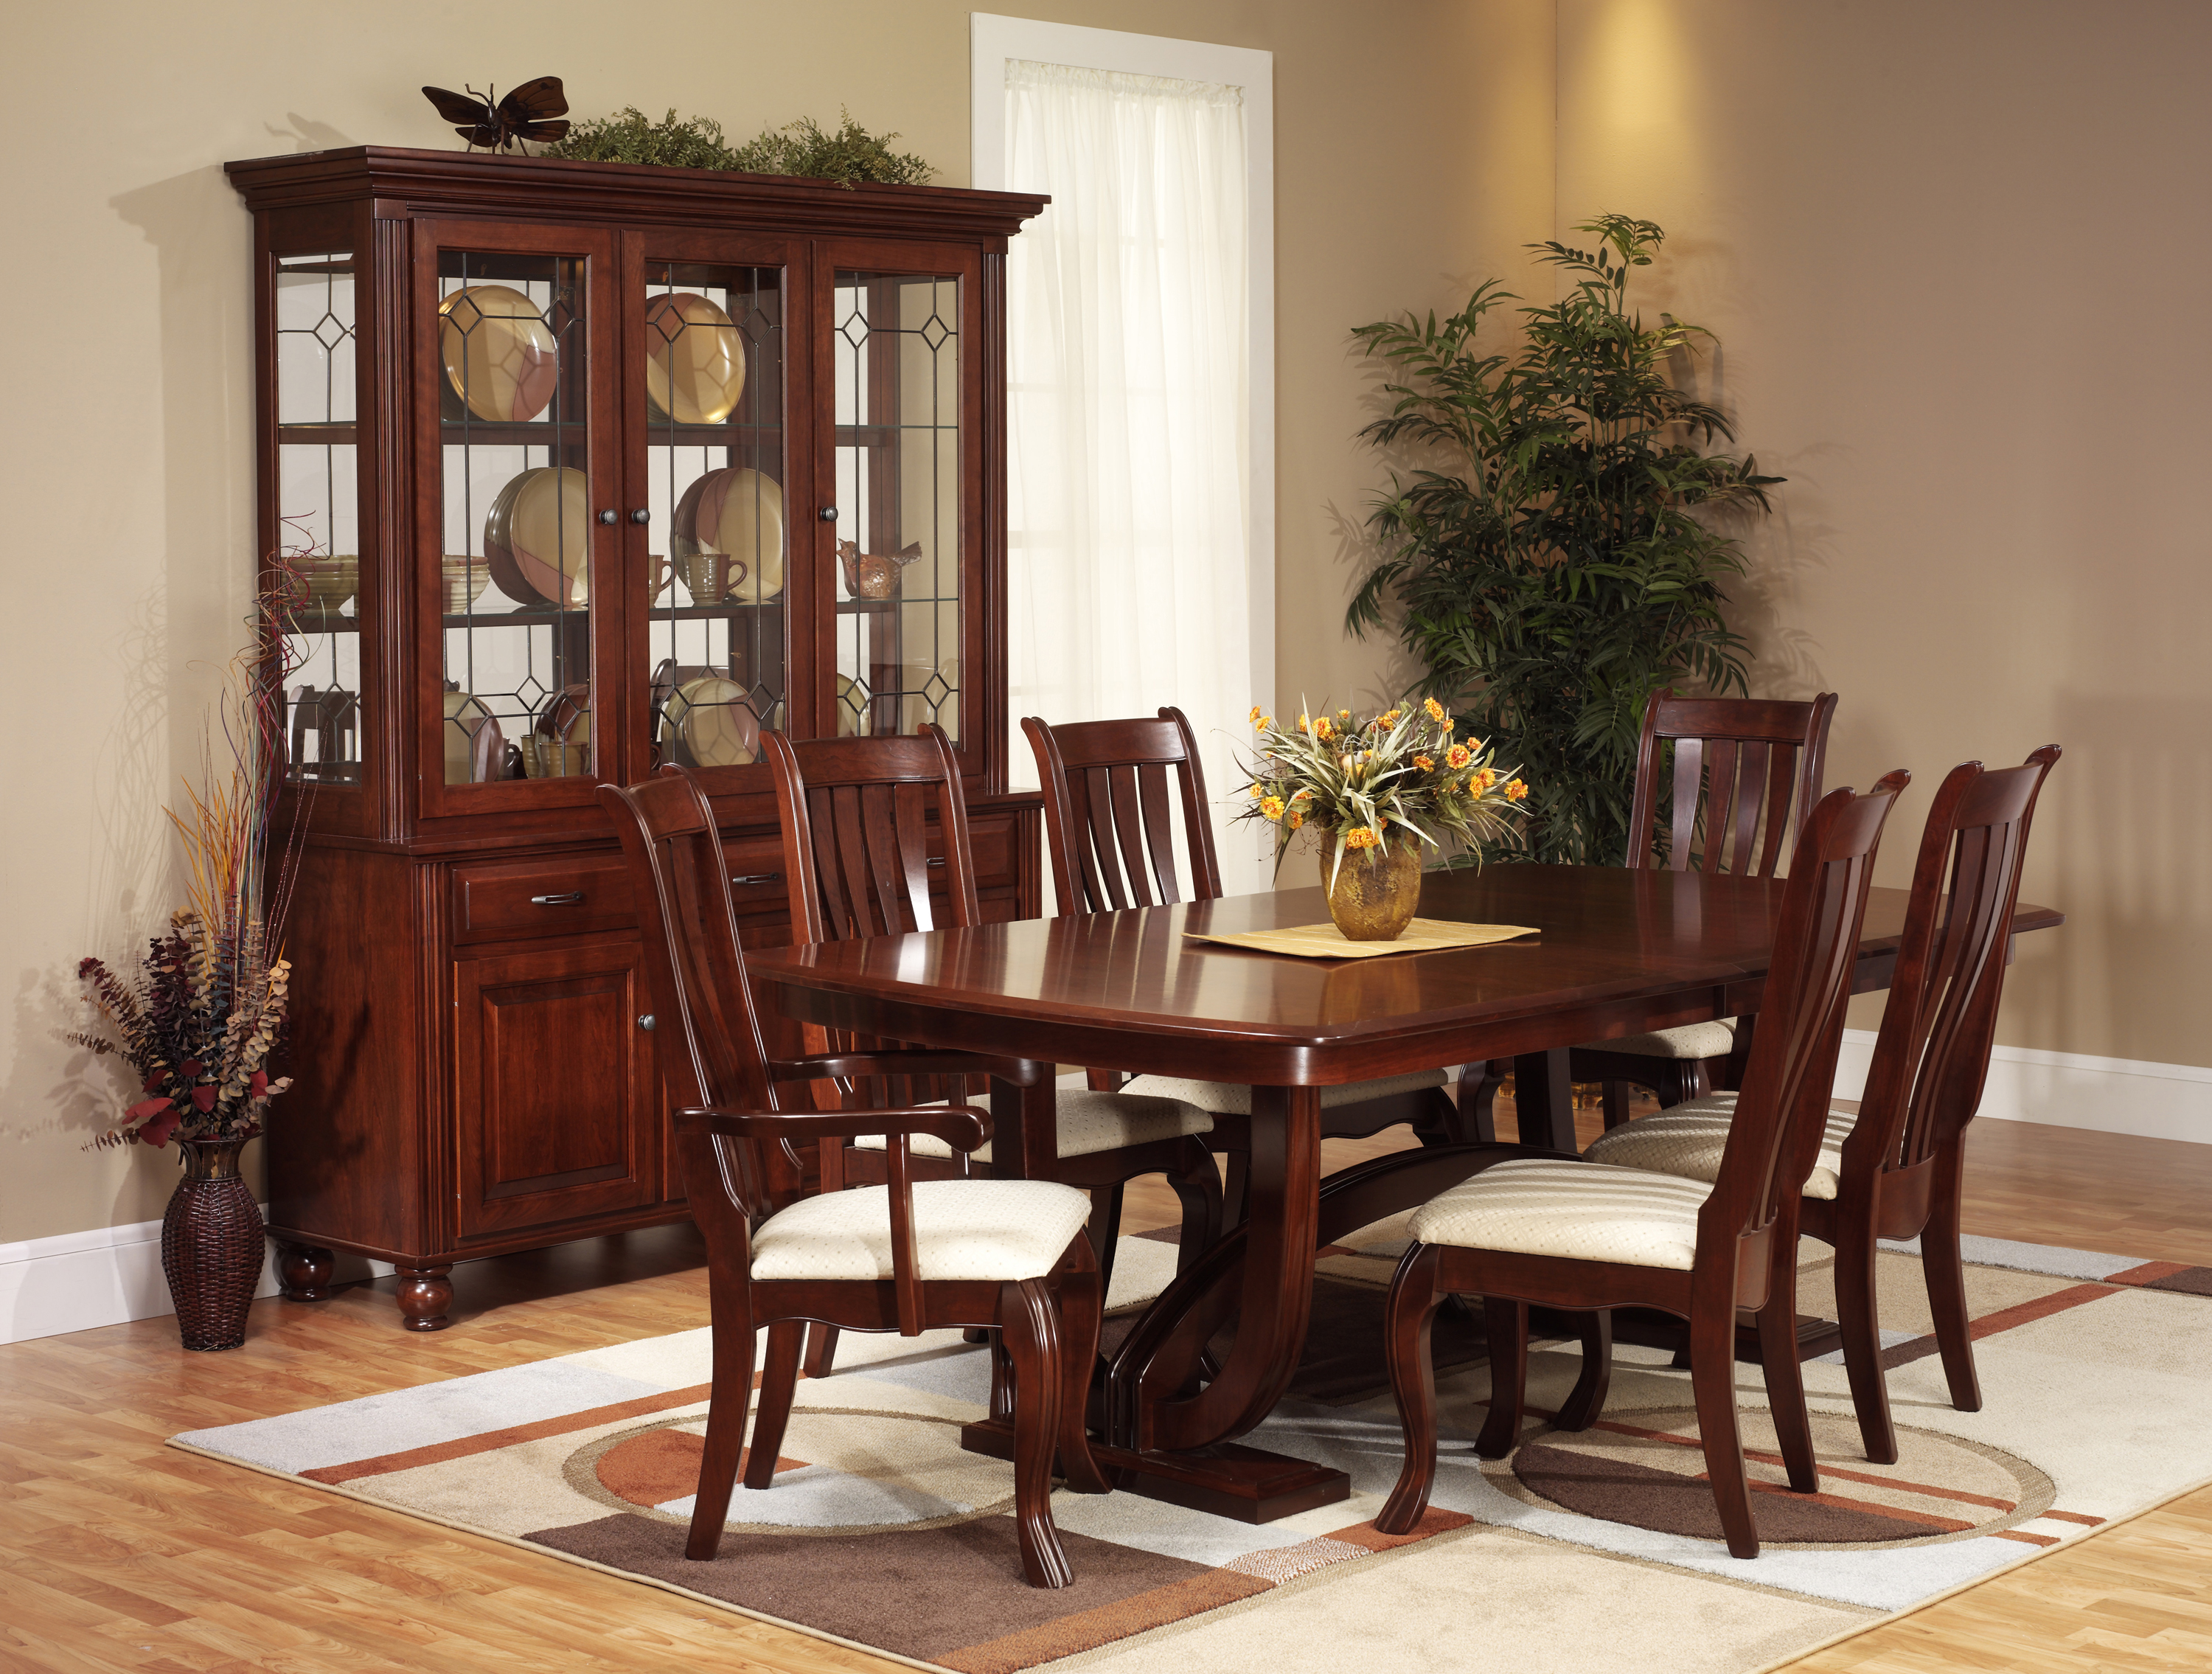 The amish gallery dining room for Dining room furniture images